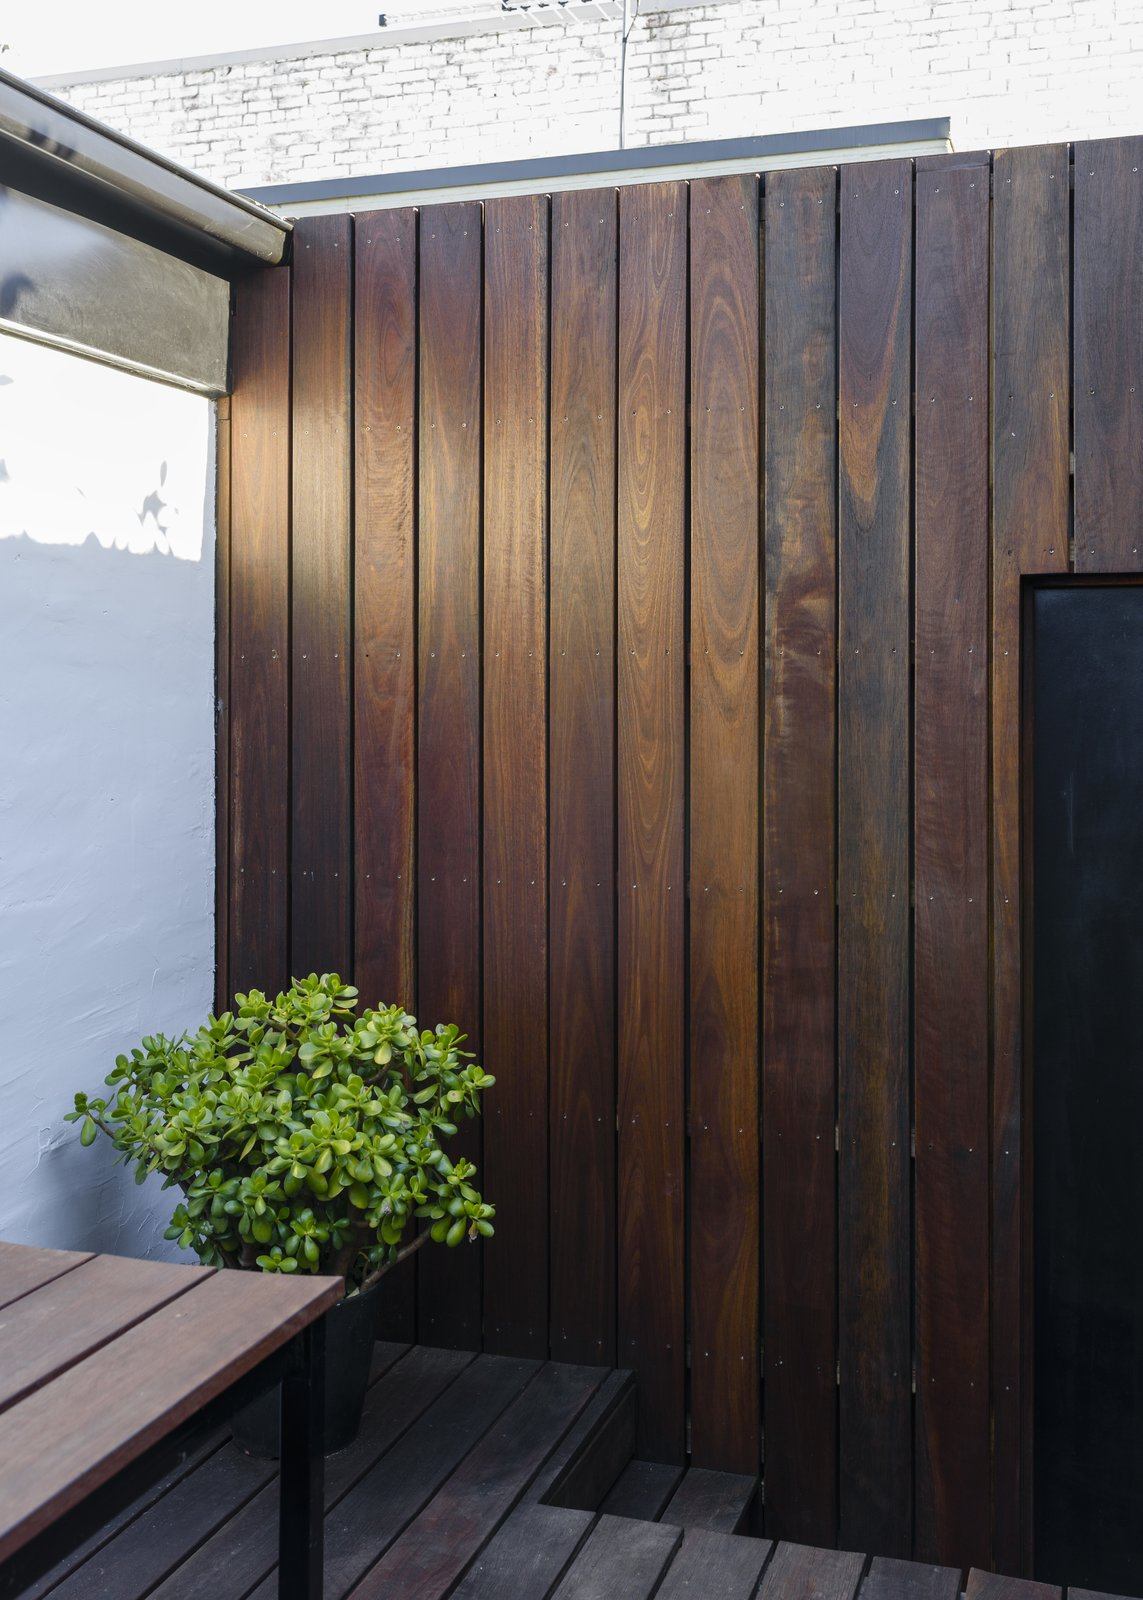 Outdoor, Back Yard, Shrubs, Small Patio, Porch, Deck, Hardscapes, Gardens, Decking Patio, Porch, Deck, Planters Patio, Porch, Deck, Wood Fences, Wall, and Wood Patio, Porch, Deck Courtyard wall detail  Curtain Cottage